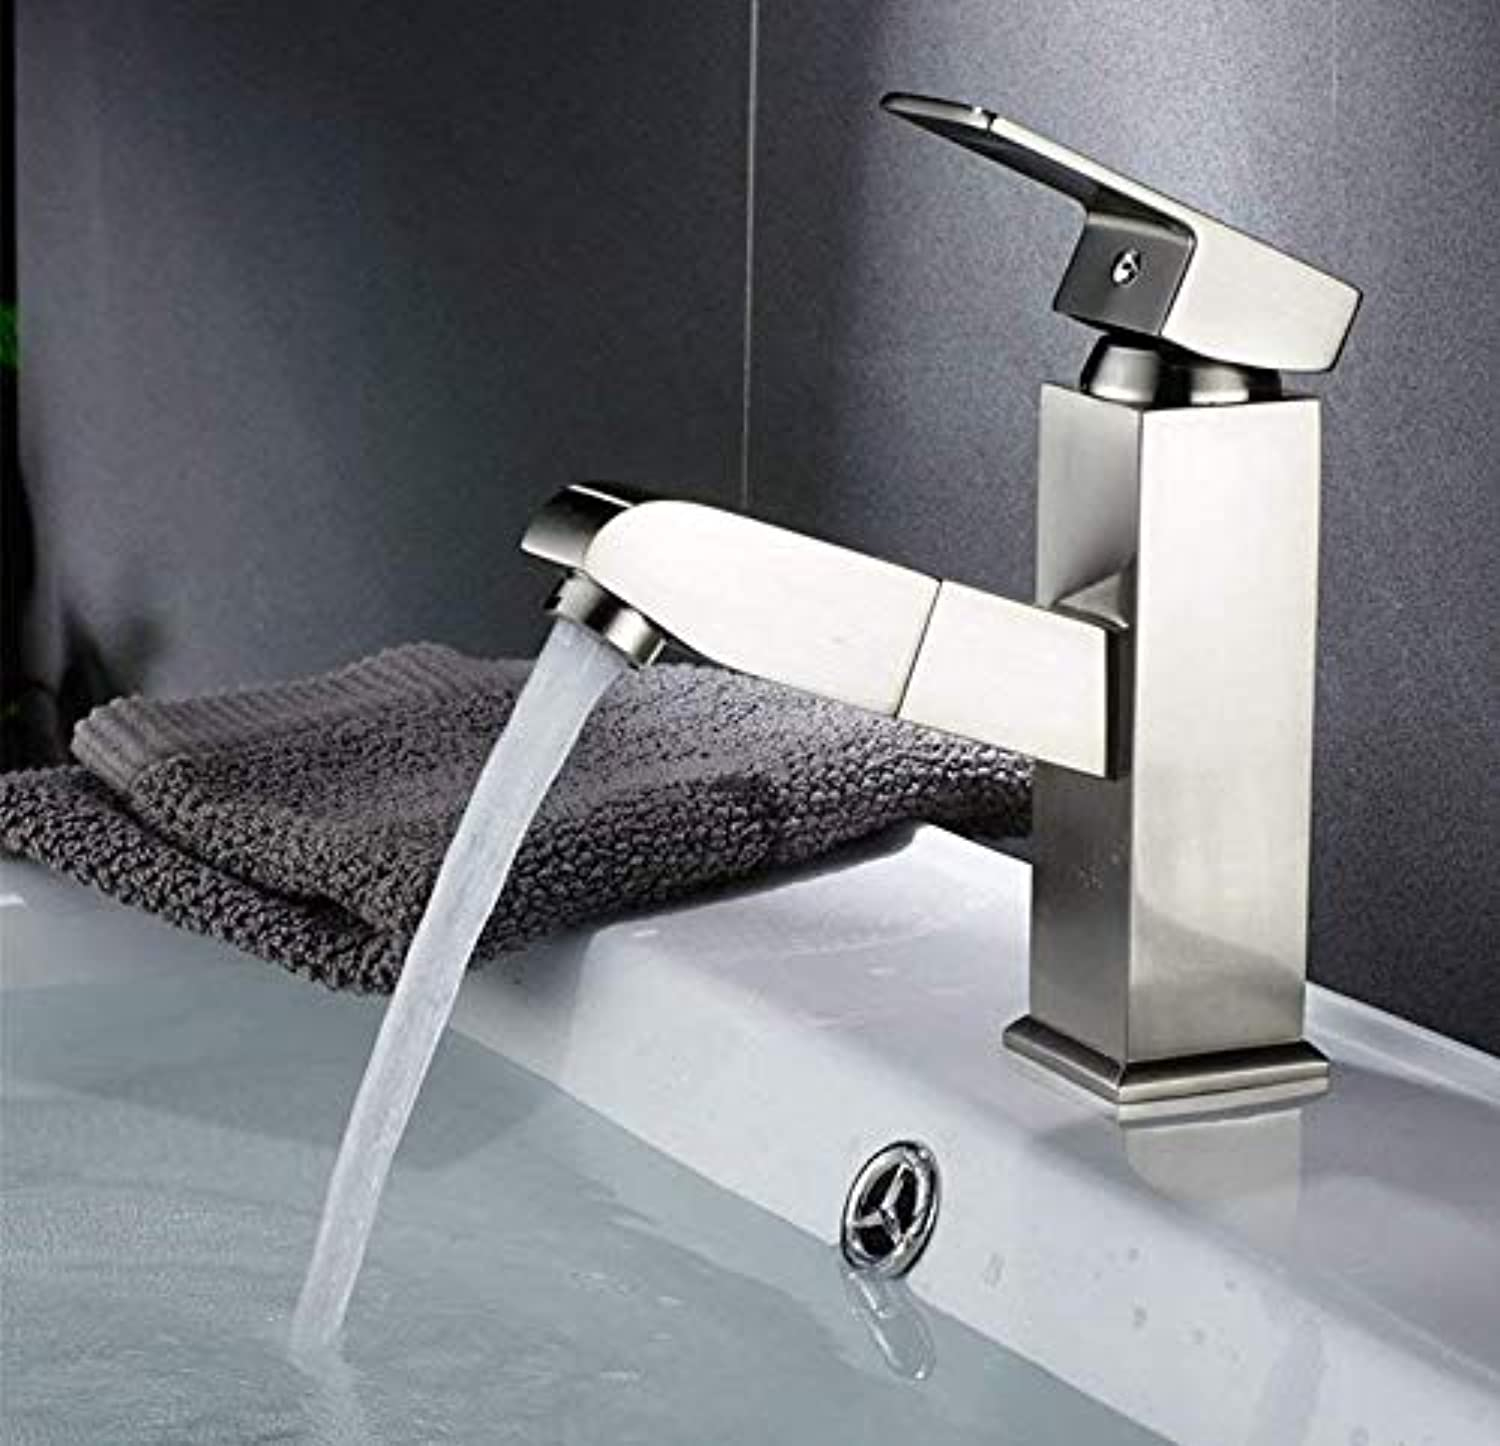 Kitchen fauct Shampoo, Basin, Faucet, Pull, Copper, Cold, Hot Water Faucet, Washroom, Bathroom, Telescopic Faucet Cabinet, Single Hole, Right Angle Wire Drawing. (color   -, Size   -)